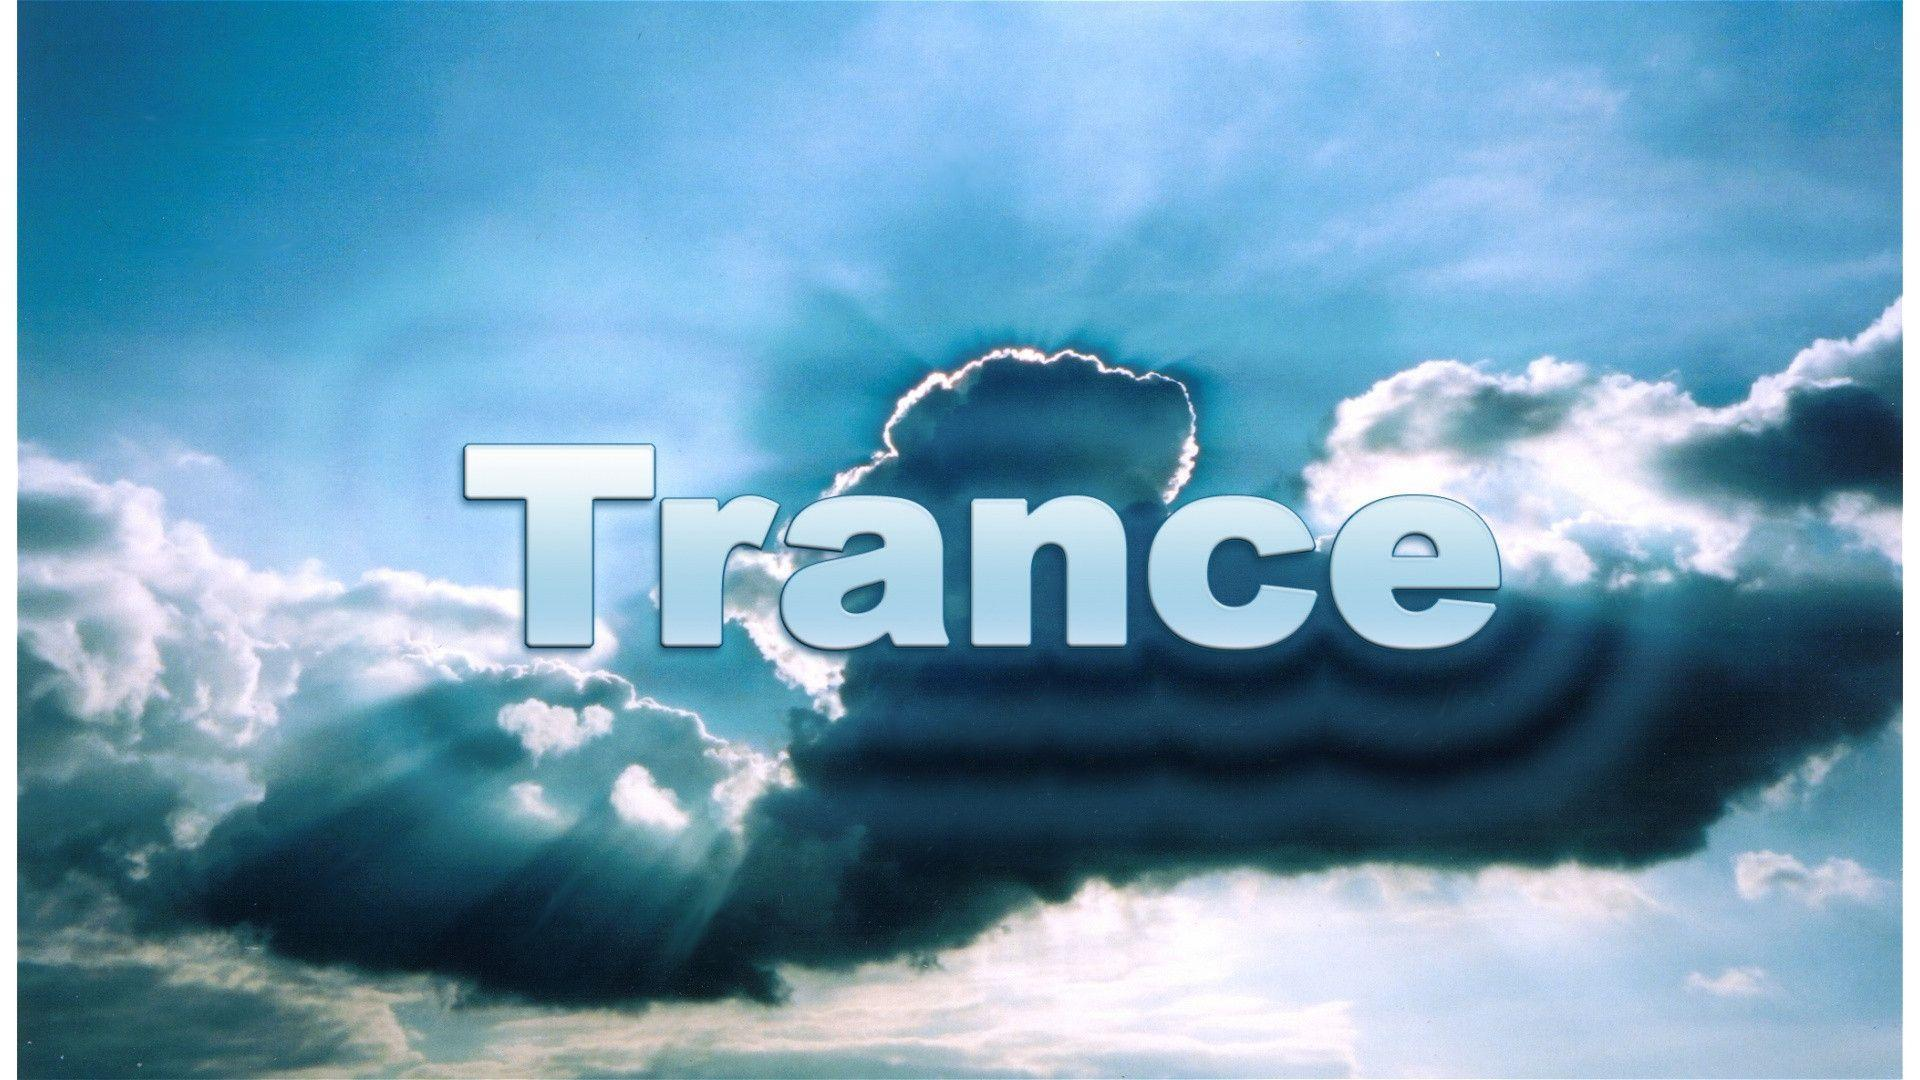 wallpapers trance wallpaper - photo #37